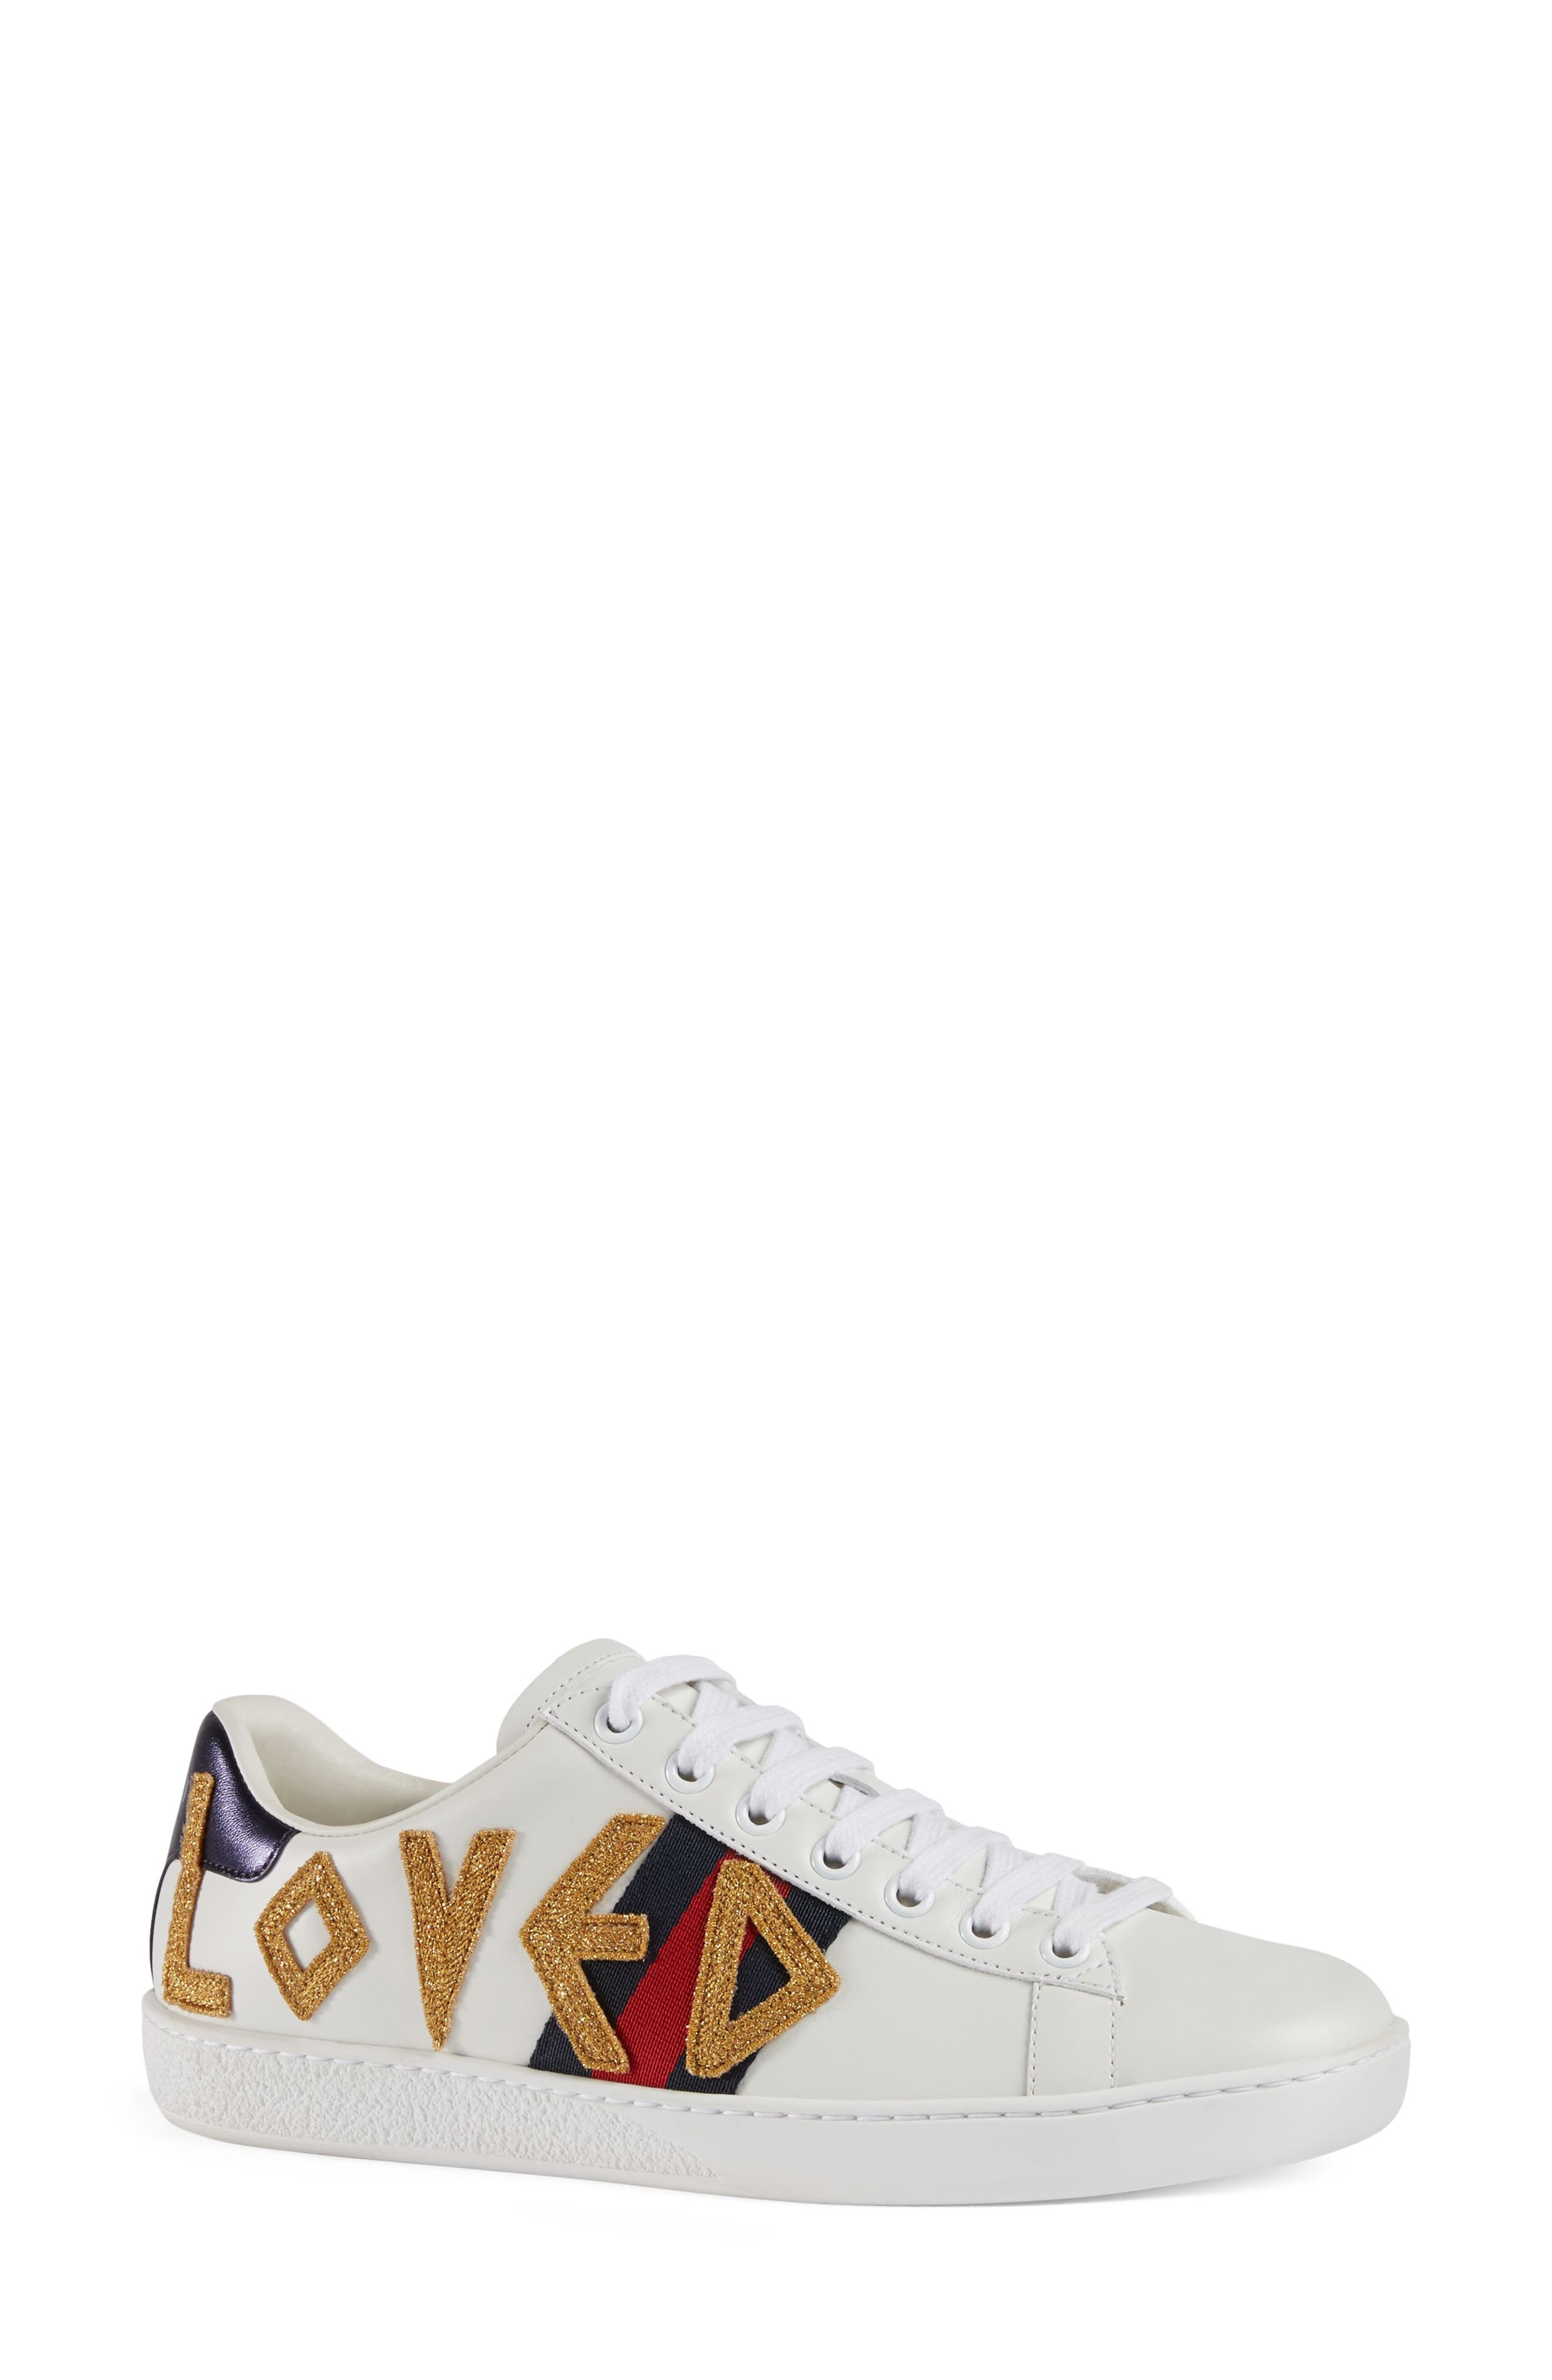 Gucci New Ace Loved Sneakers, White